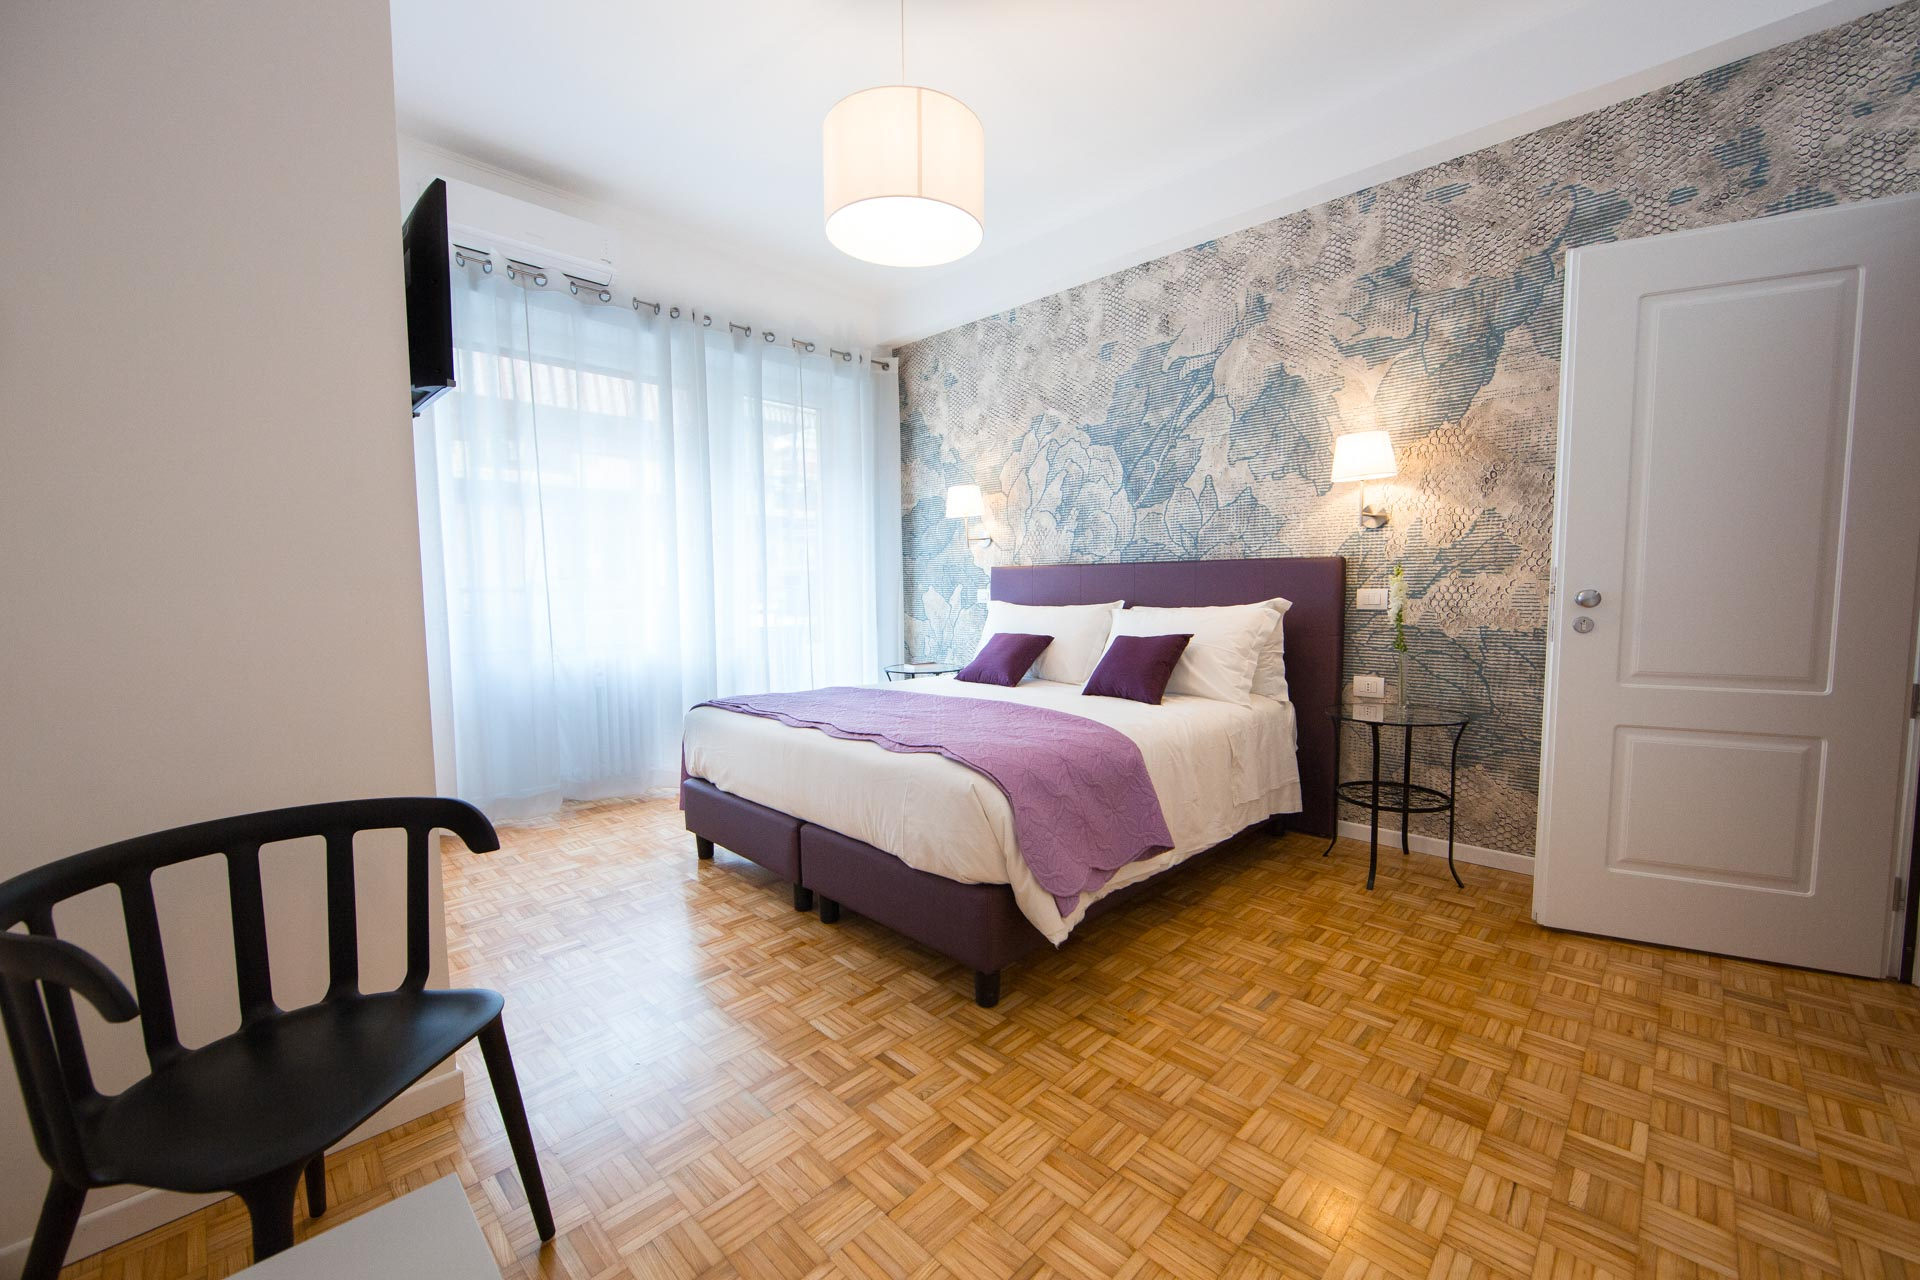 ROMA474 - Bed and Breakfast